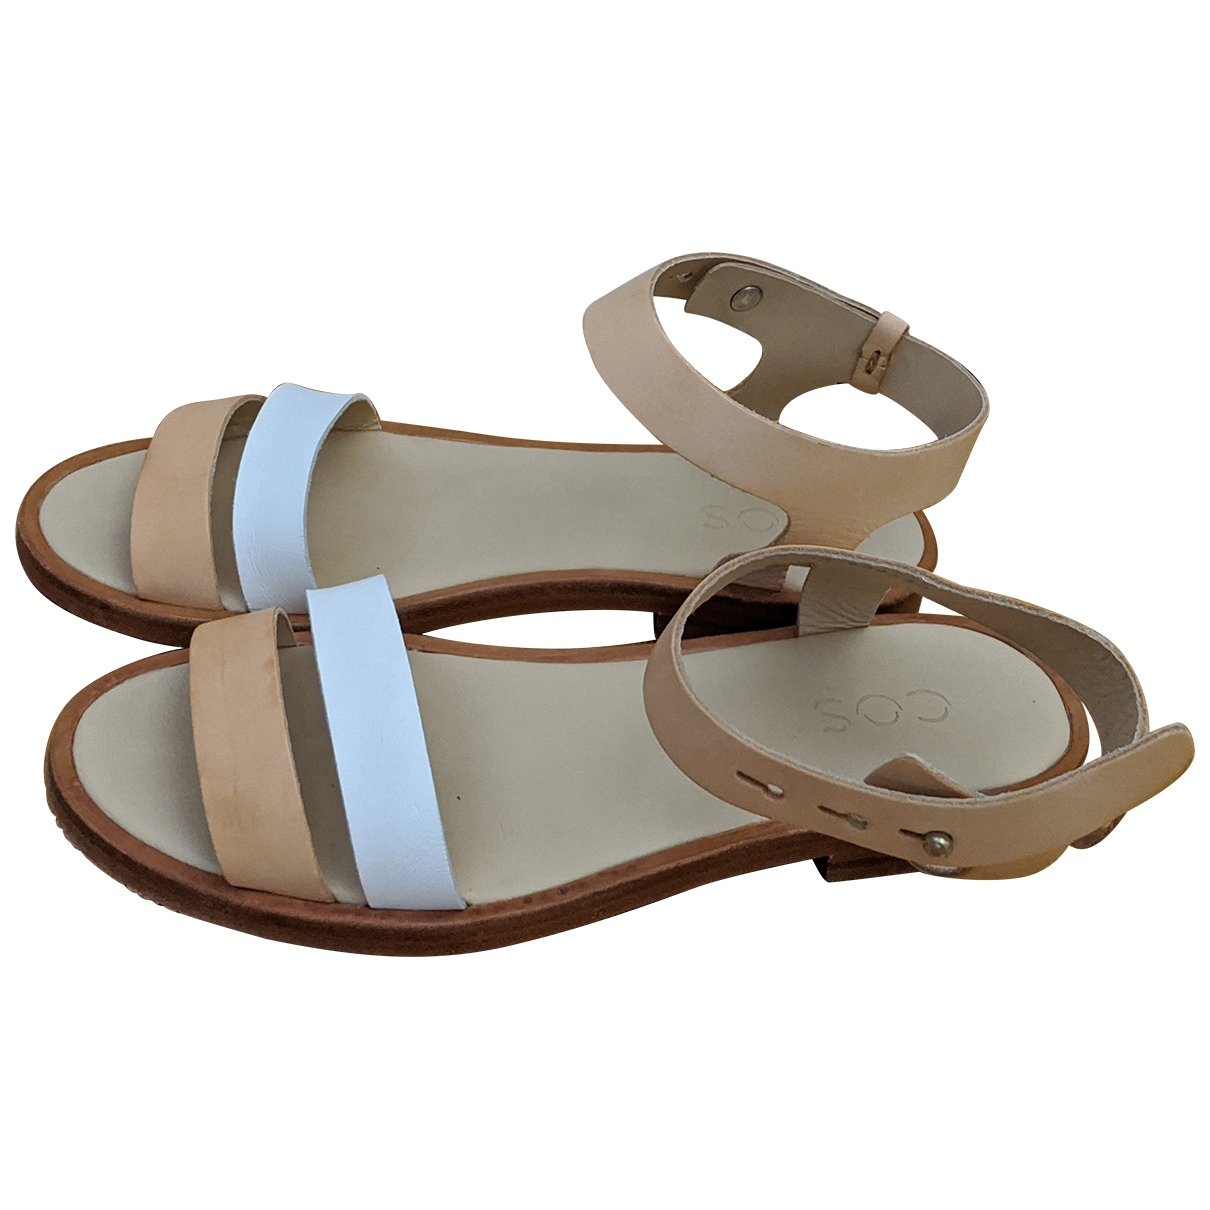 Cos \N Beige Leather Sandals for Women 38 EU